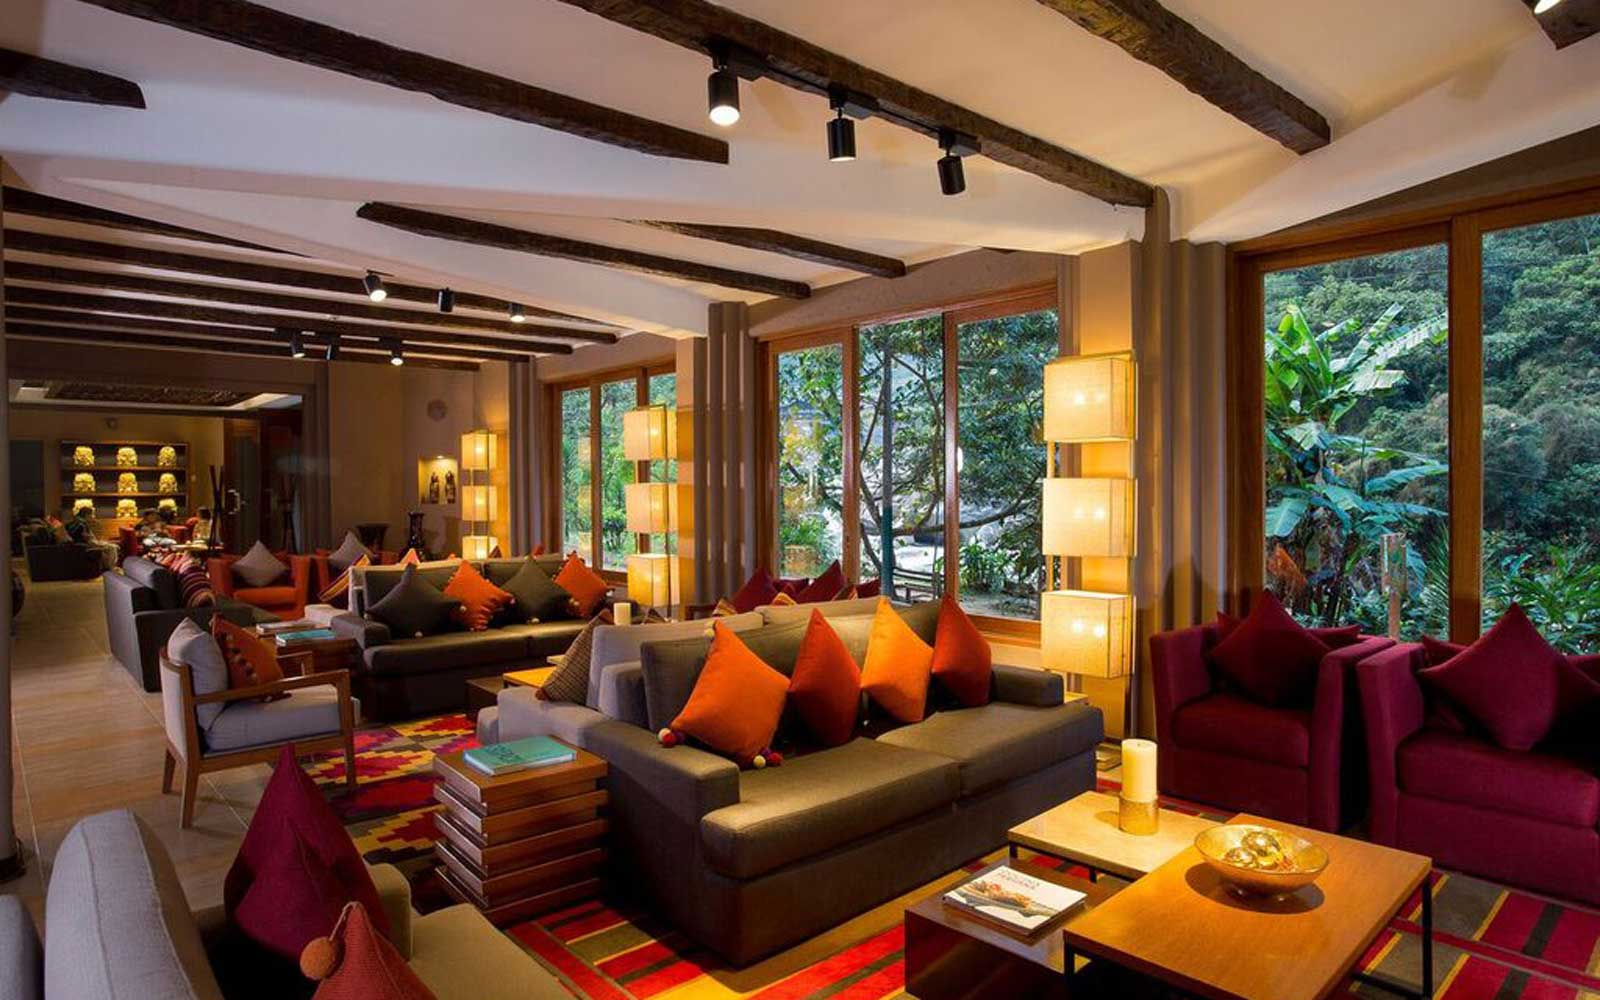 Get 30% off Stays at a Boutique Hotel at the Foot of Macchu Picchu